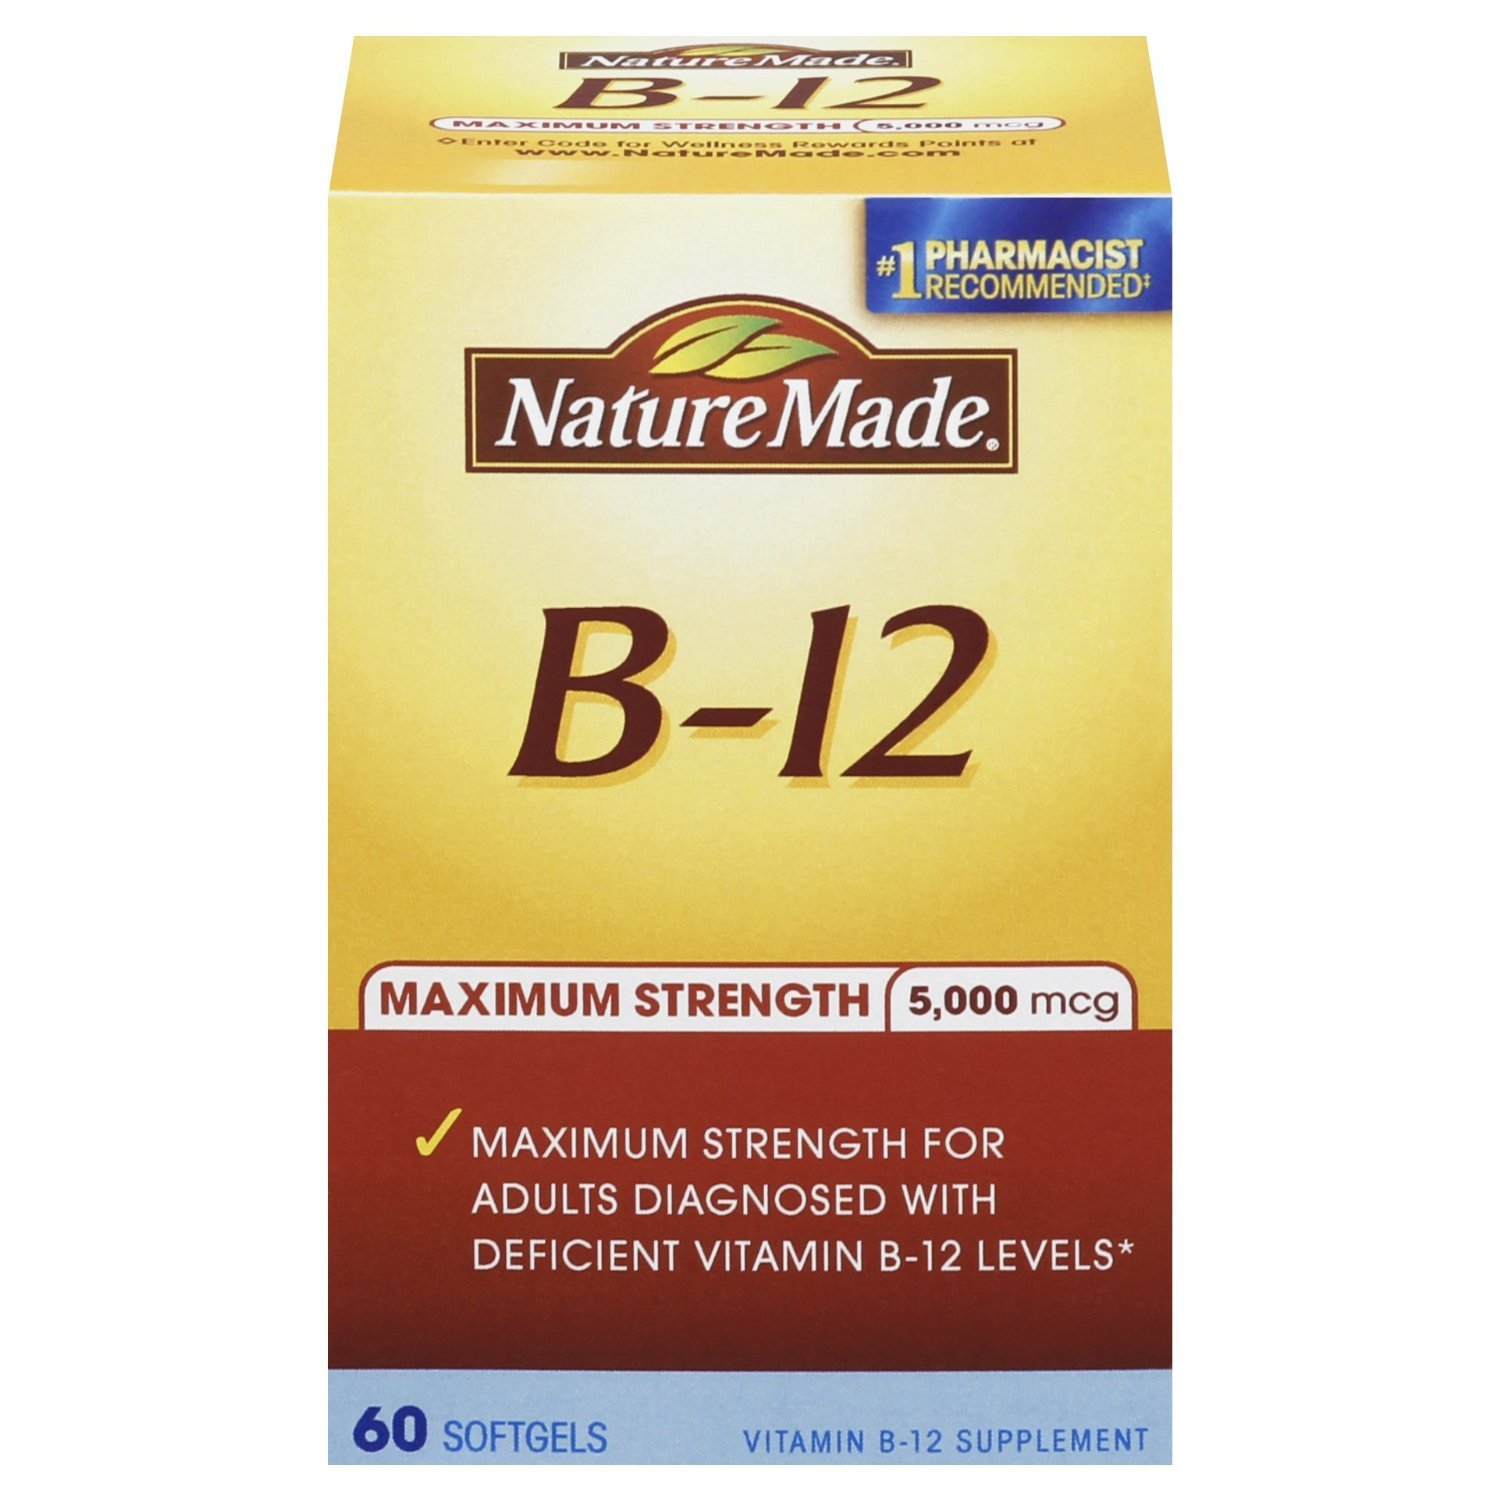 Nature Made Maximum Strength Vitamin B-12 Soft gel, 5000 mcg 60 Count Pack of 2